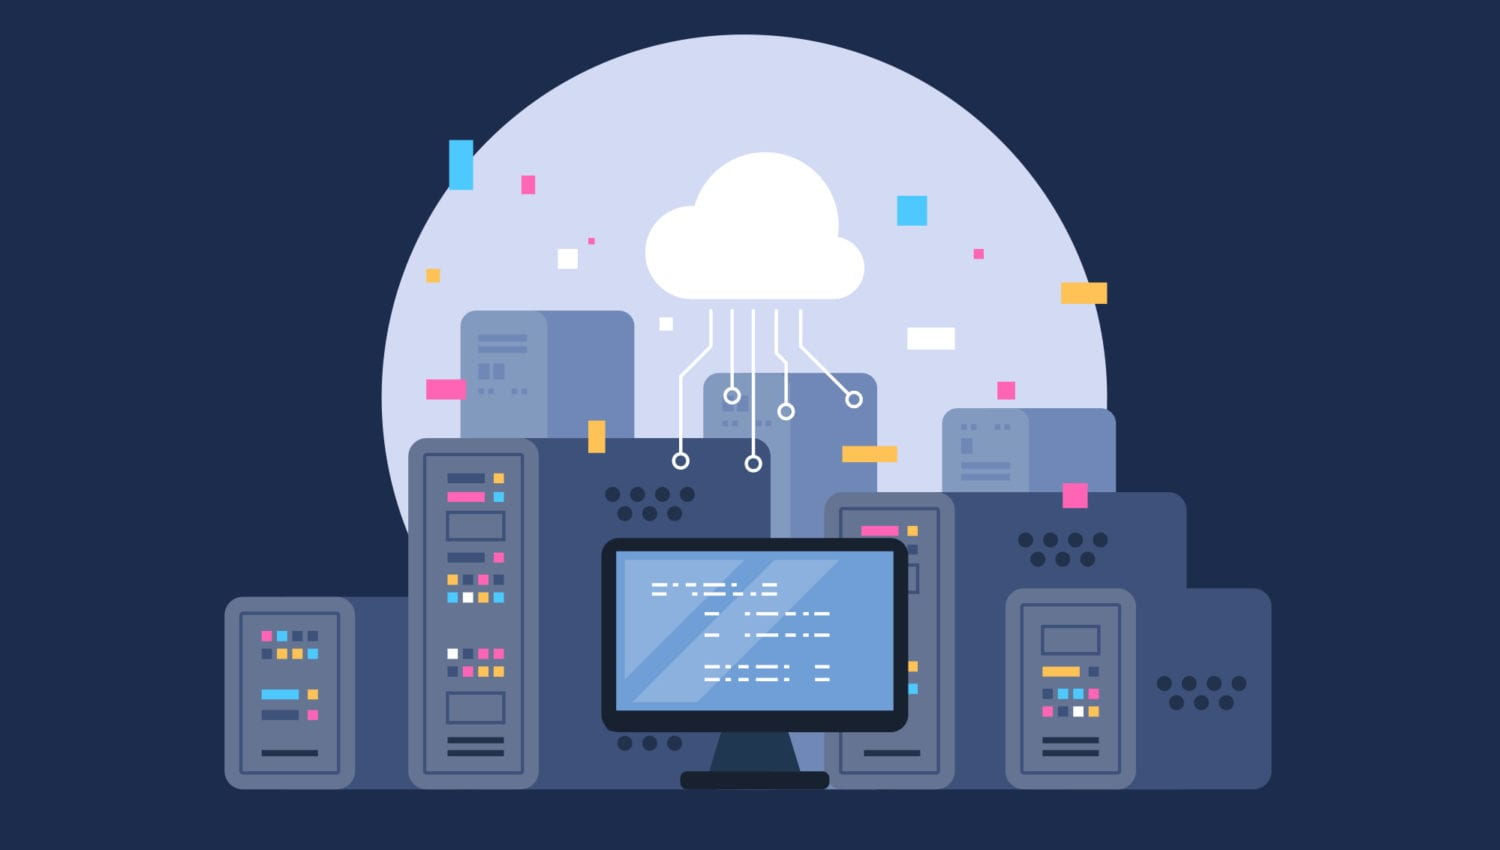 Website Servers – what are my hosting options and why are they important?